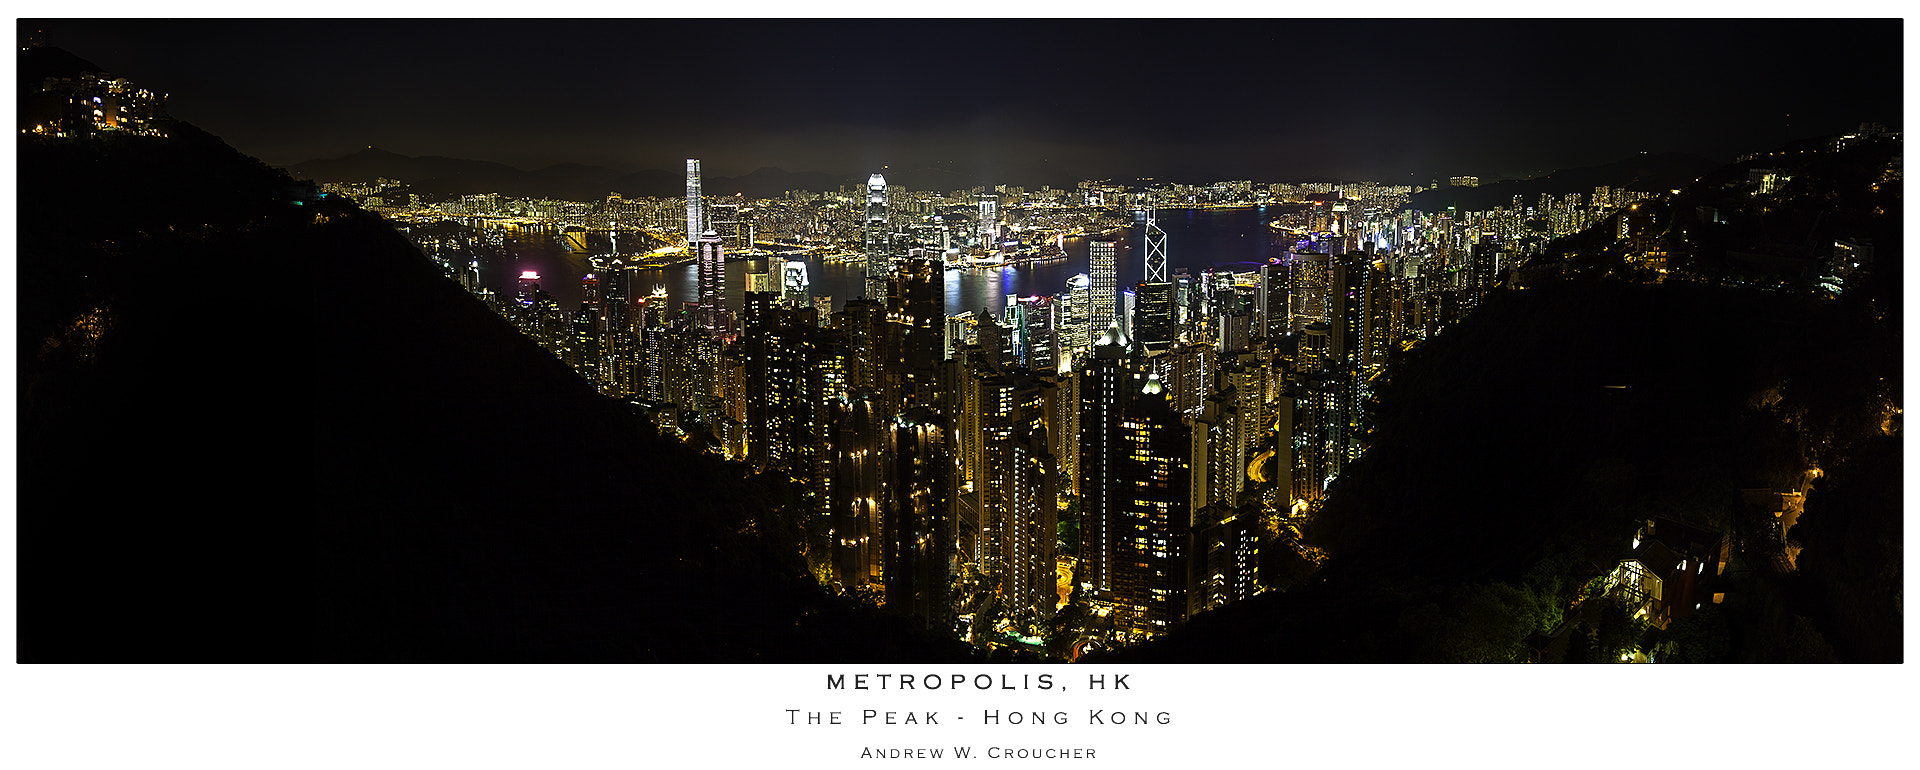 Photograph Metrpolis, HK by &rü C on 500px